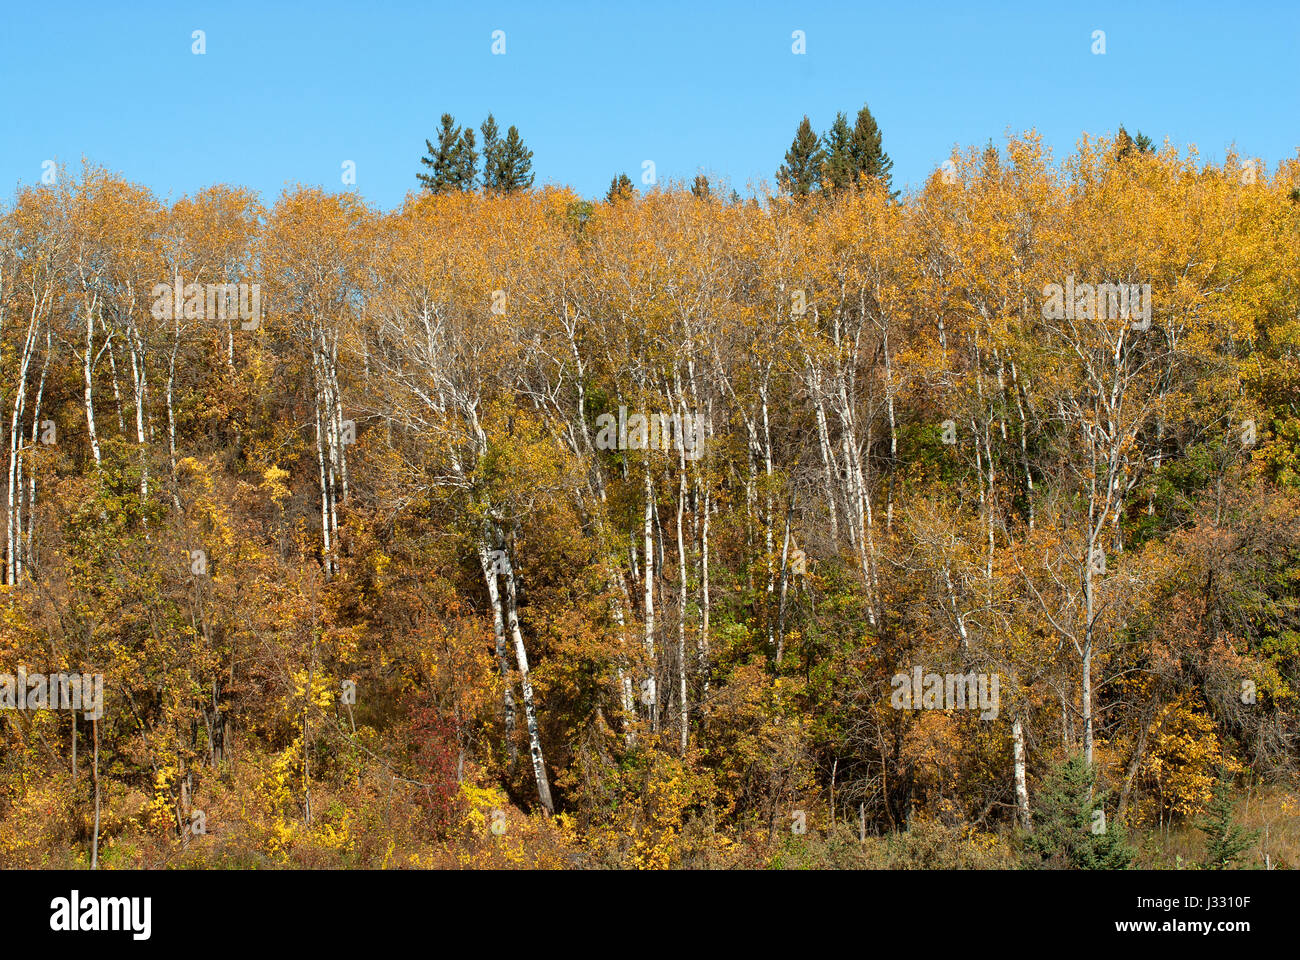 Fall foliage at Spruce Woods Provincial Park, Manitoba, Canada - Stock Image